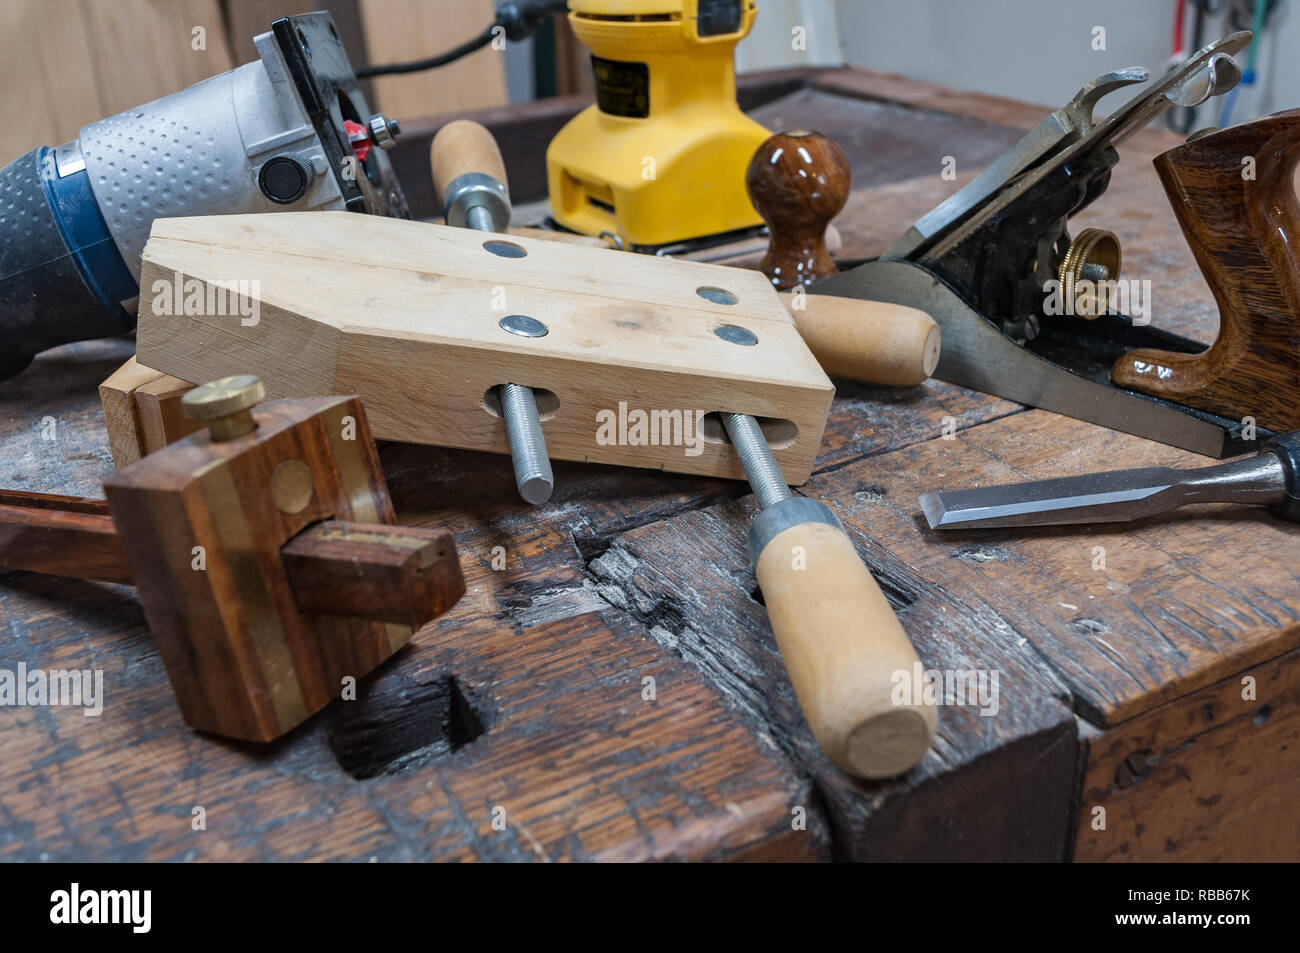 Woodworking Tools Stock Photos Woodworking Tools Stock Images Alamy